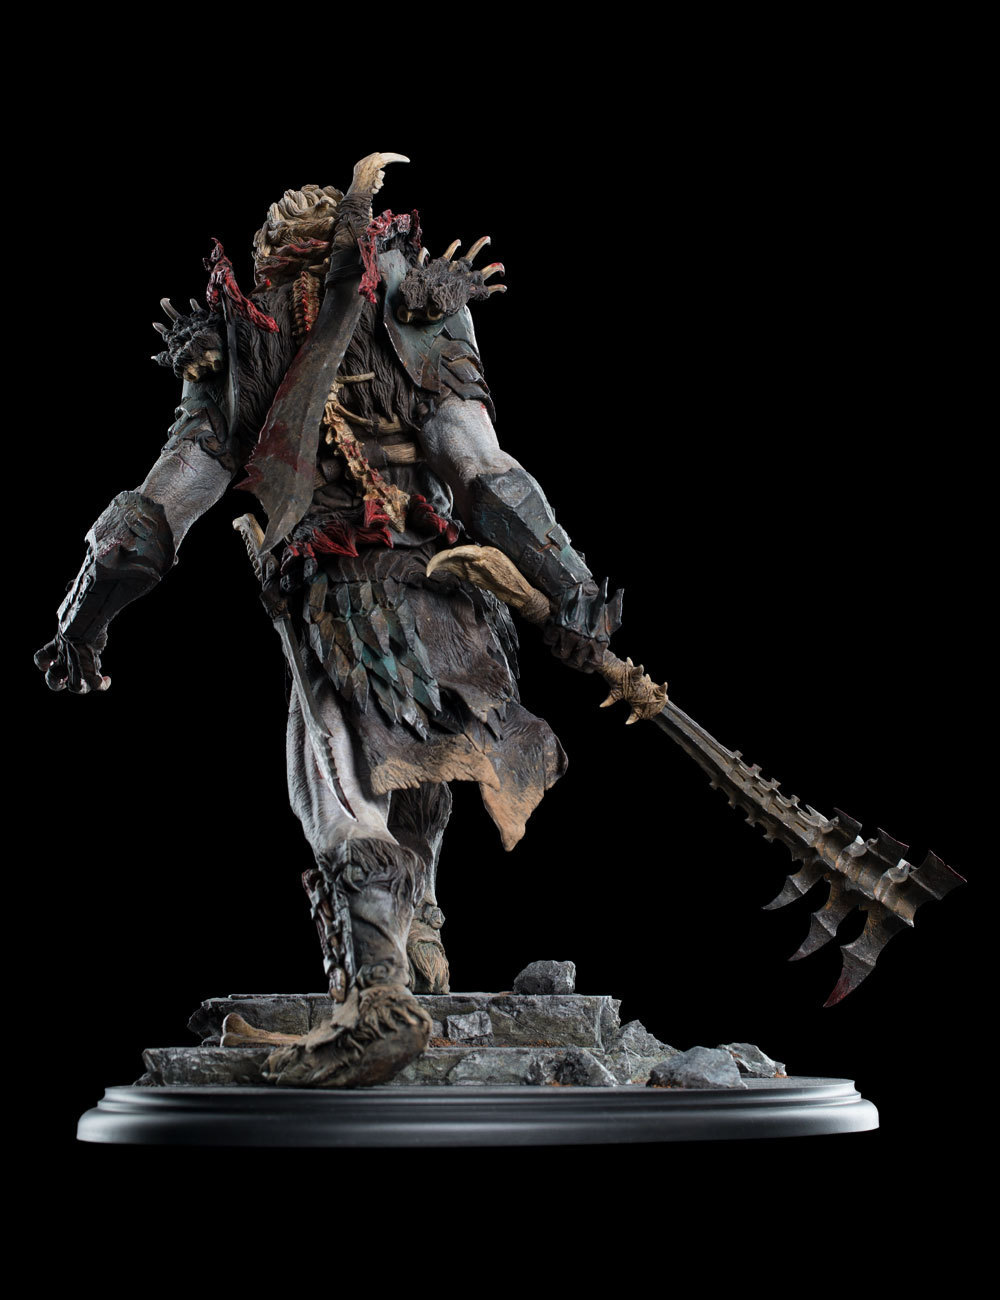 The Hobbit: The Torturer of Dol Guldur - 1/6 Scale Replica Figure image